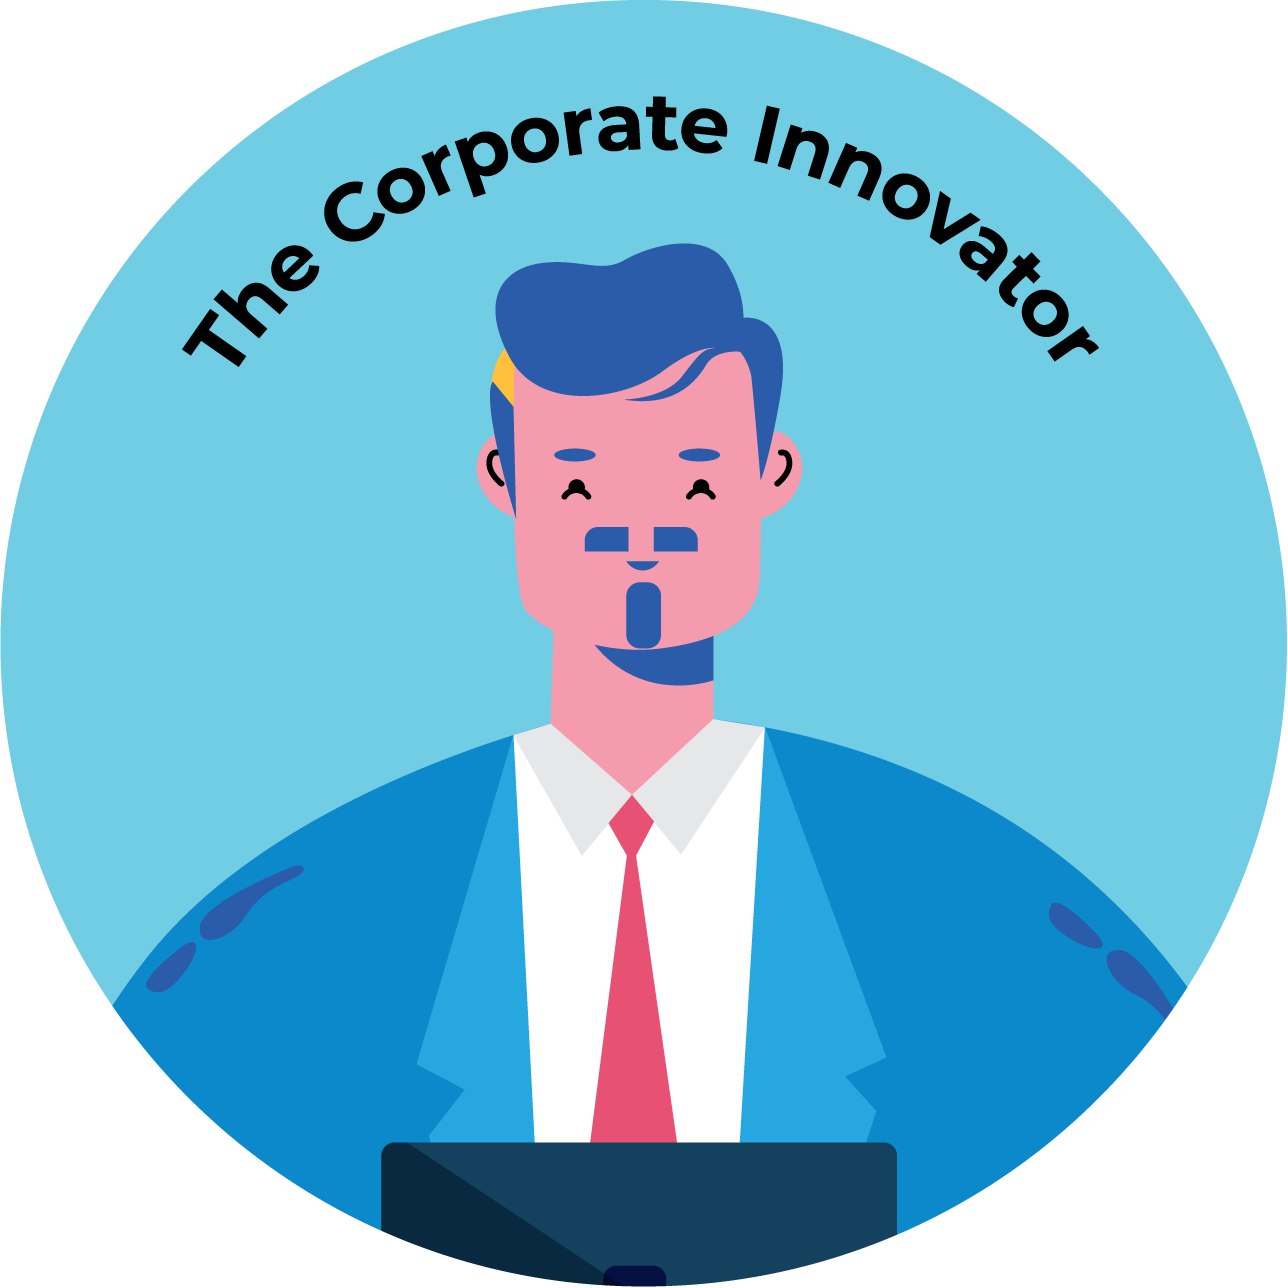 the-corp-innovator.png